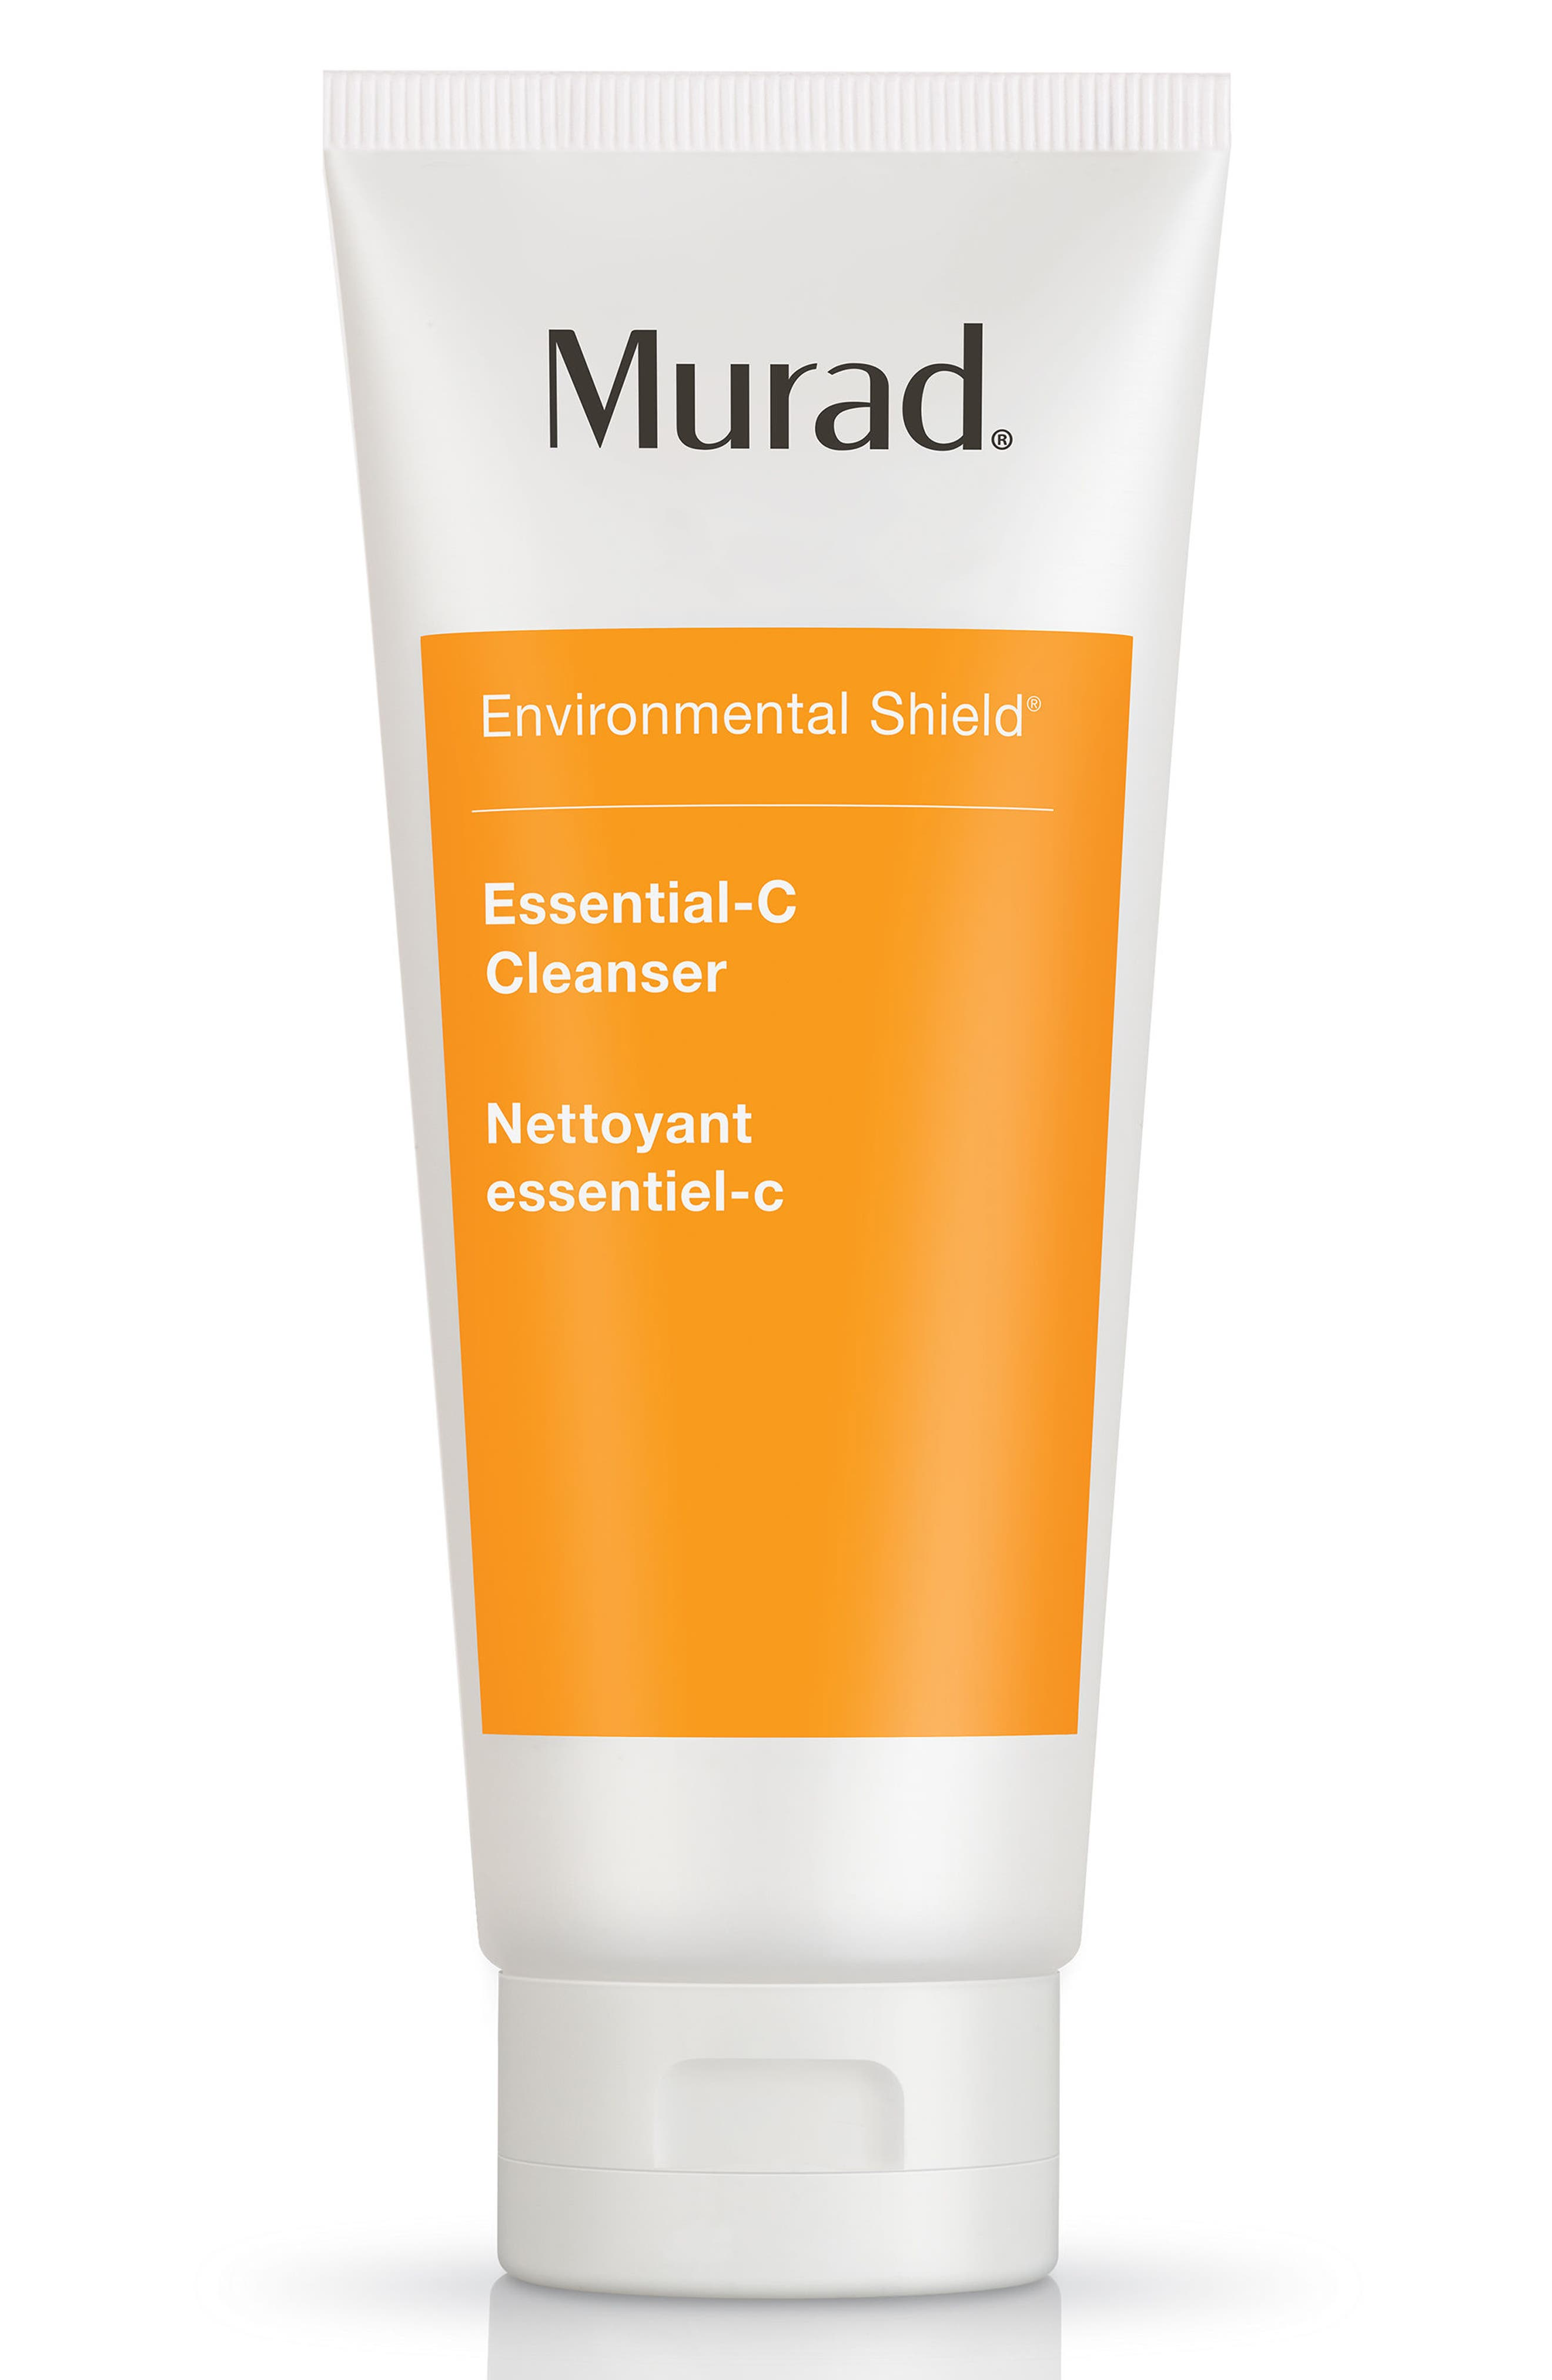 Murad® Essential-C Cleanser